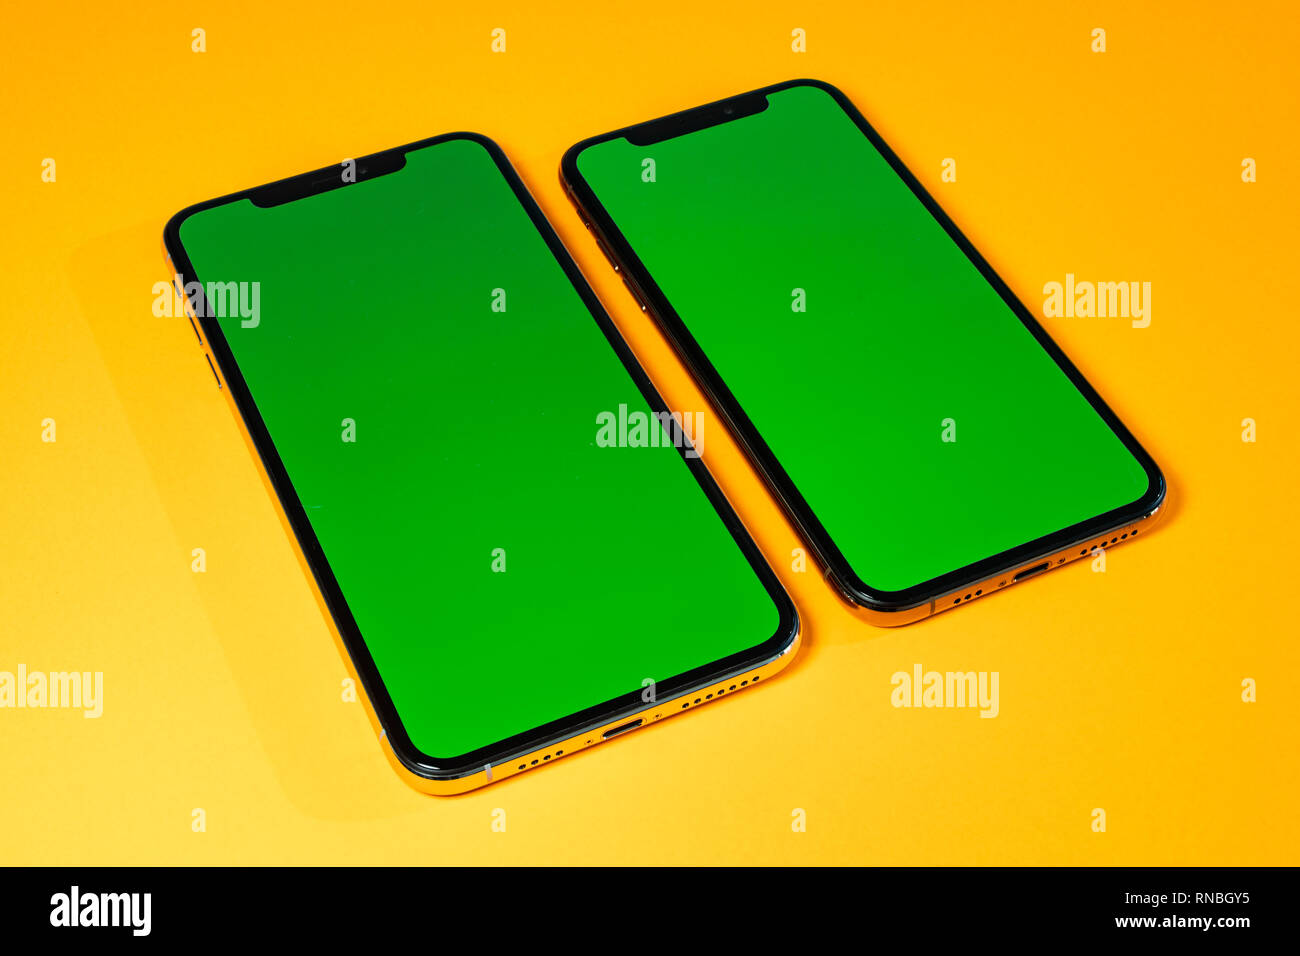 Green chroma key on on new mobile smartphne as hero object on bright glamorous modern neon pop orange background - smartphone ready to insert your app - Stock Image